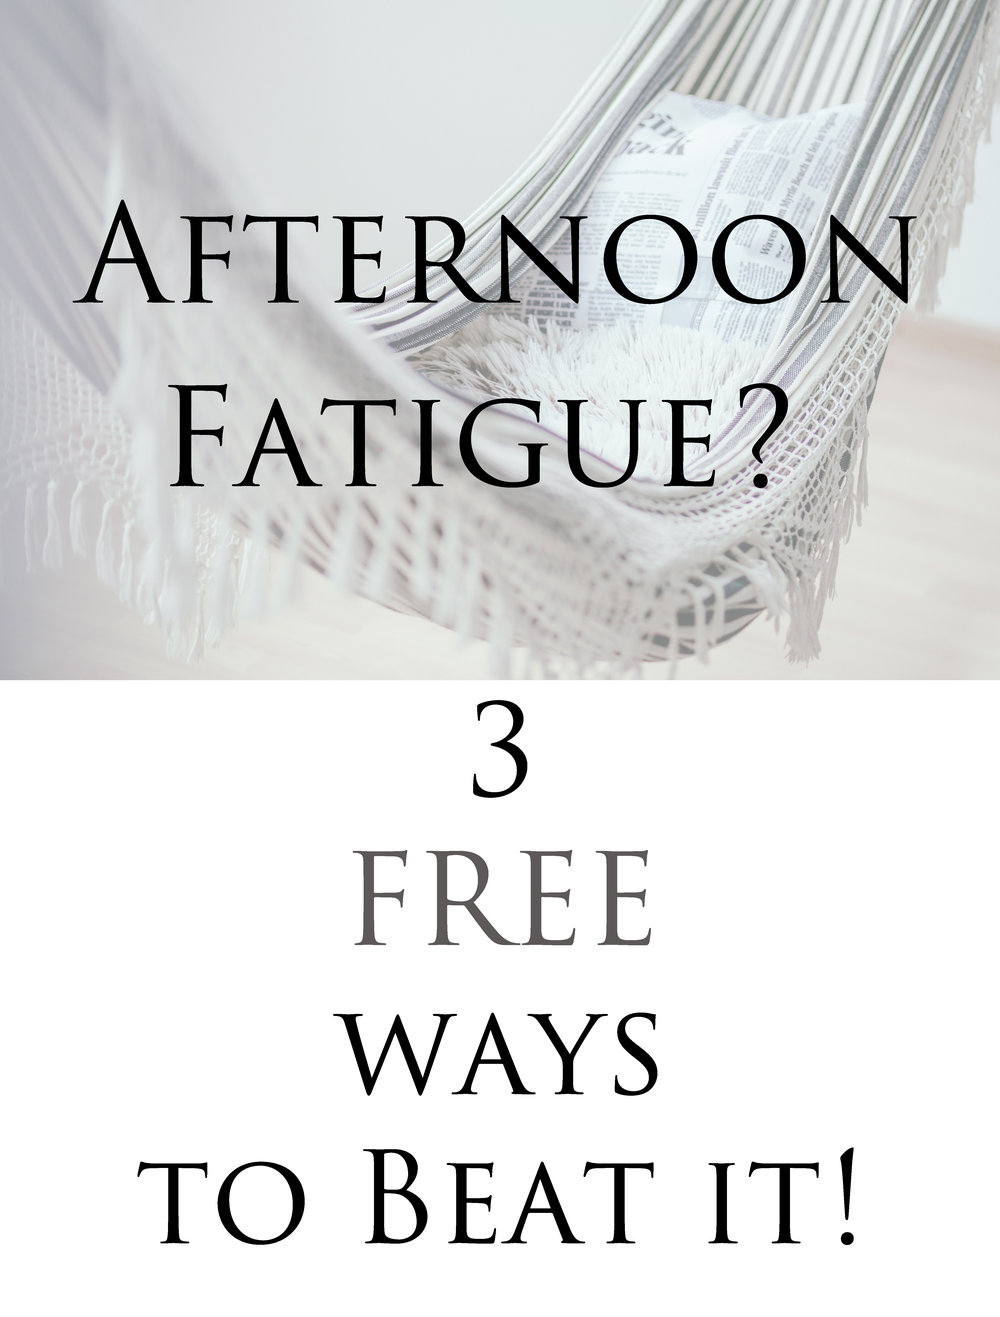 afternoon fatigue 3 ways to beat the afternoon slump.jpg